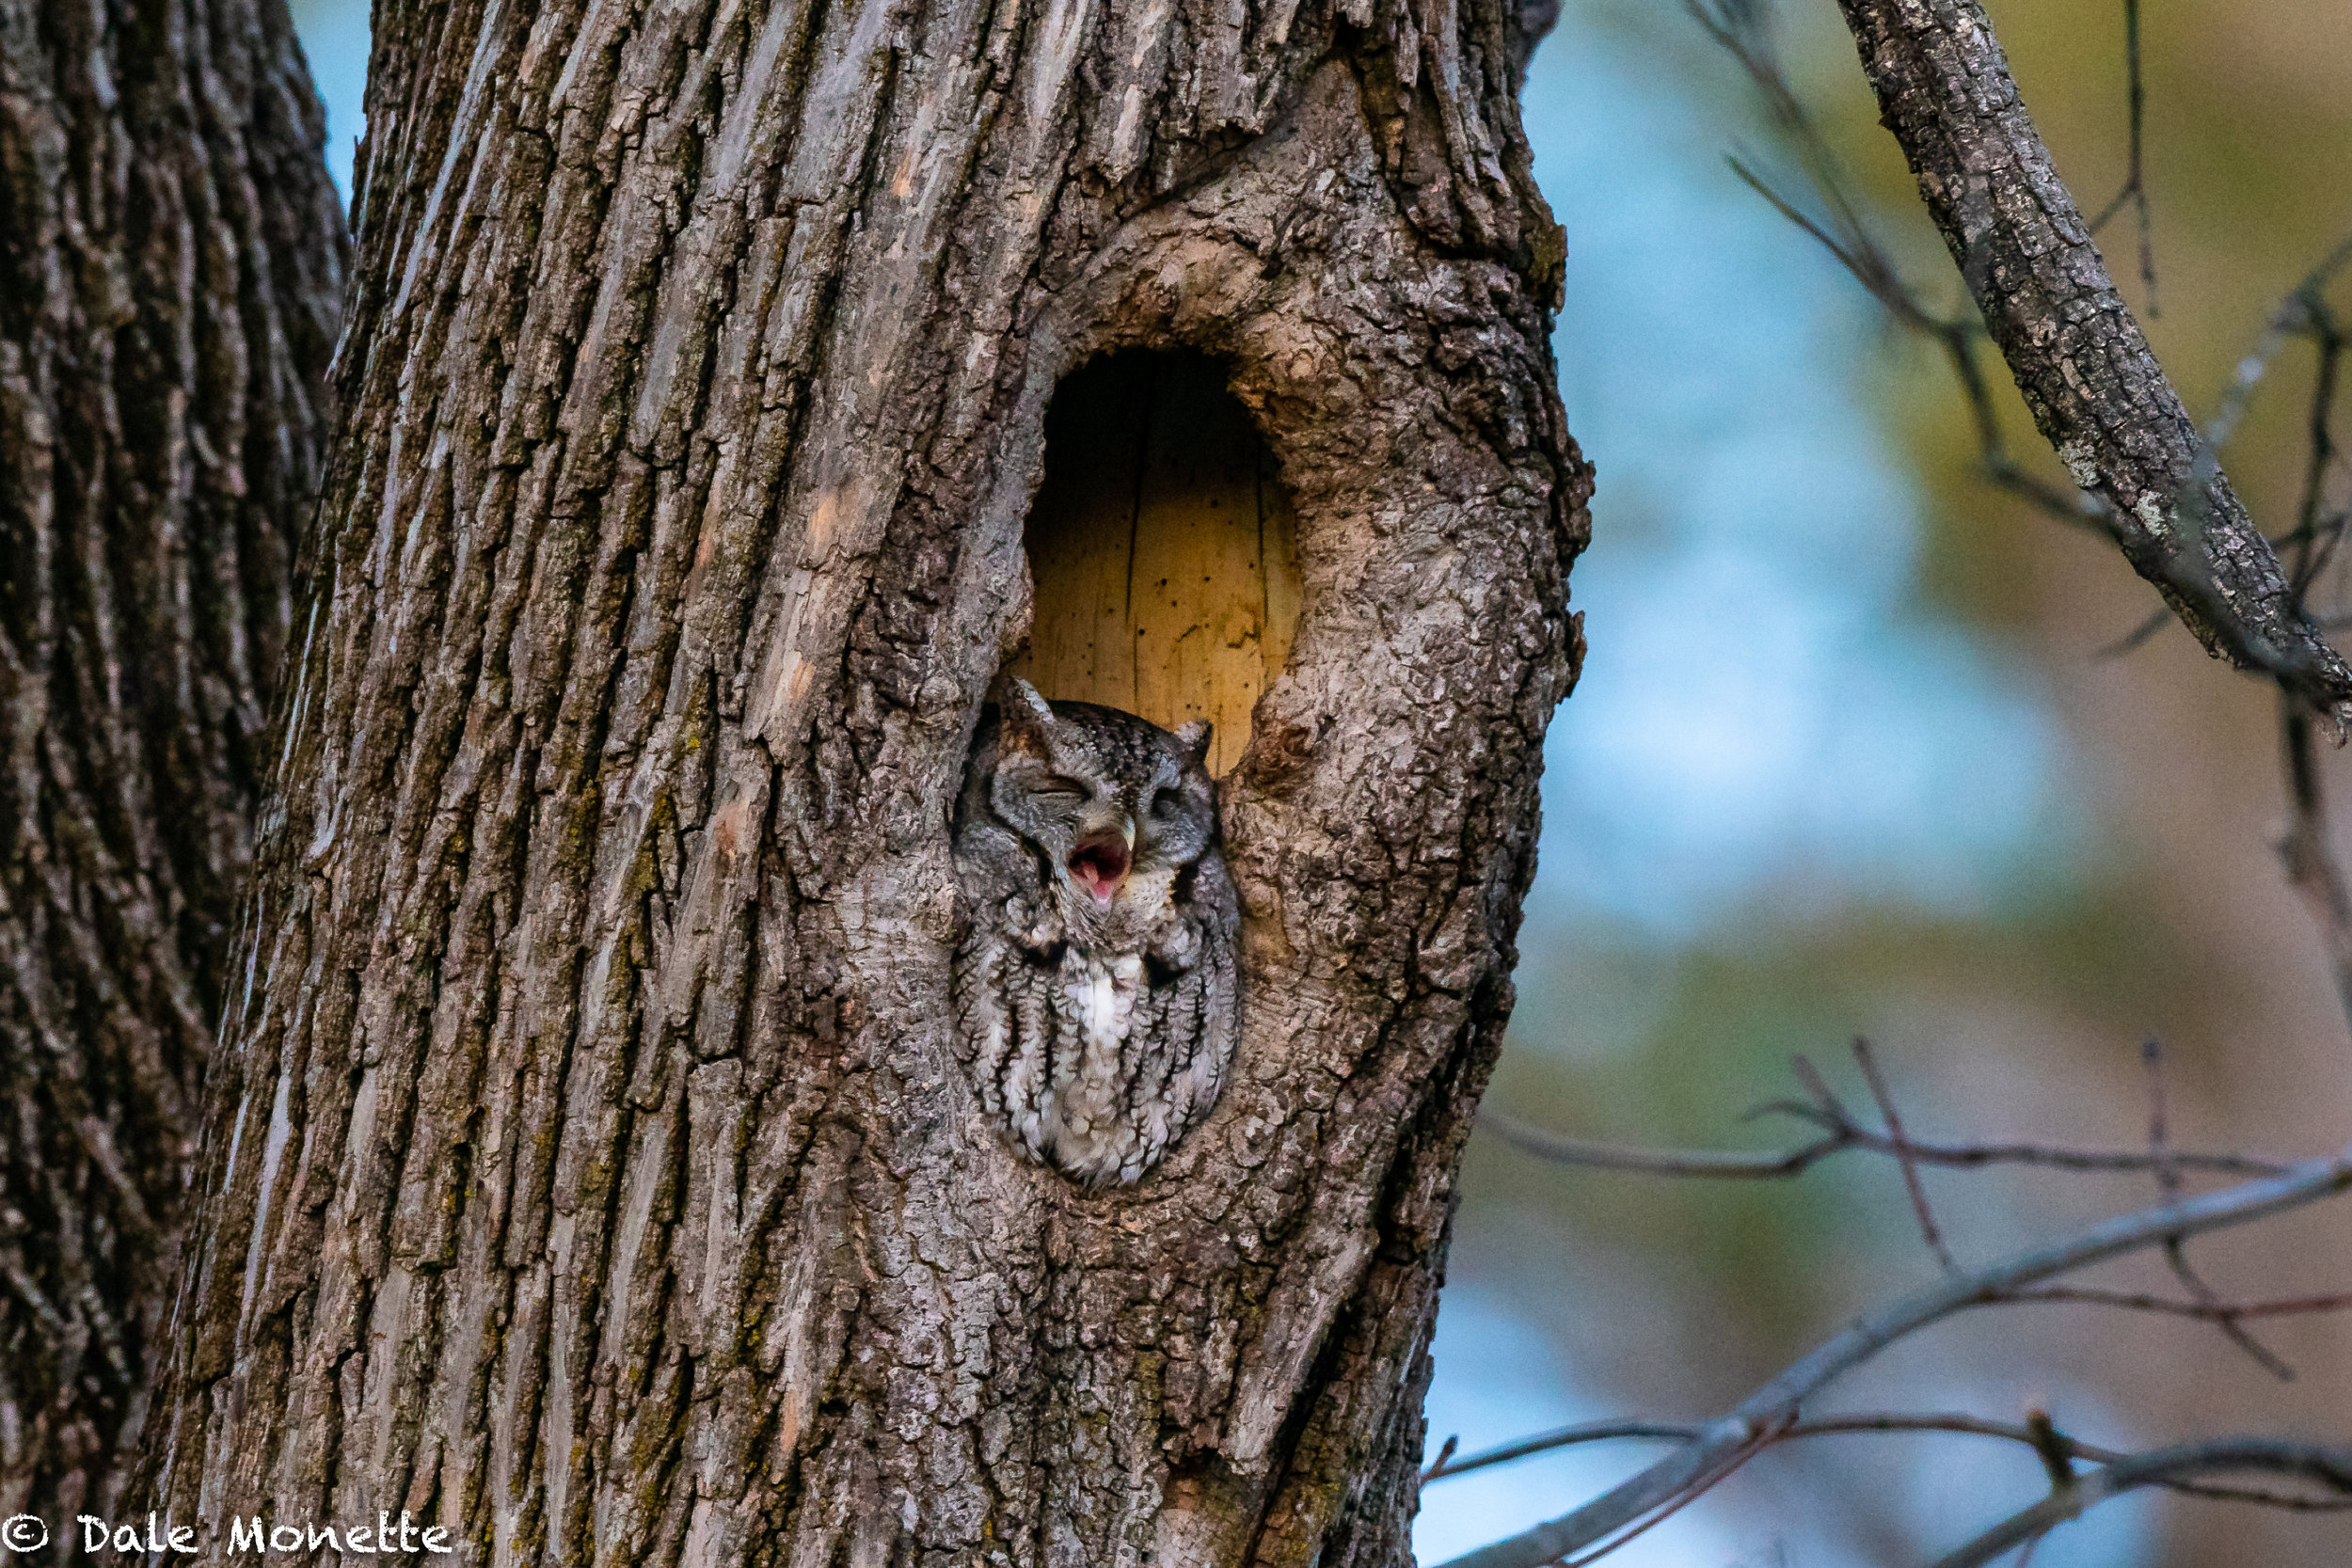 I was lucky enough to spend about an hour with this gray phase screech owl at sundown yesterday in southern New Hampshire. What a cool little bird. He woke up and finally as it was so dark we could hardly see him, he flew !